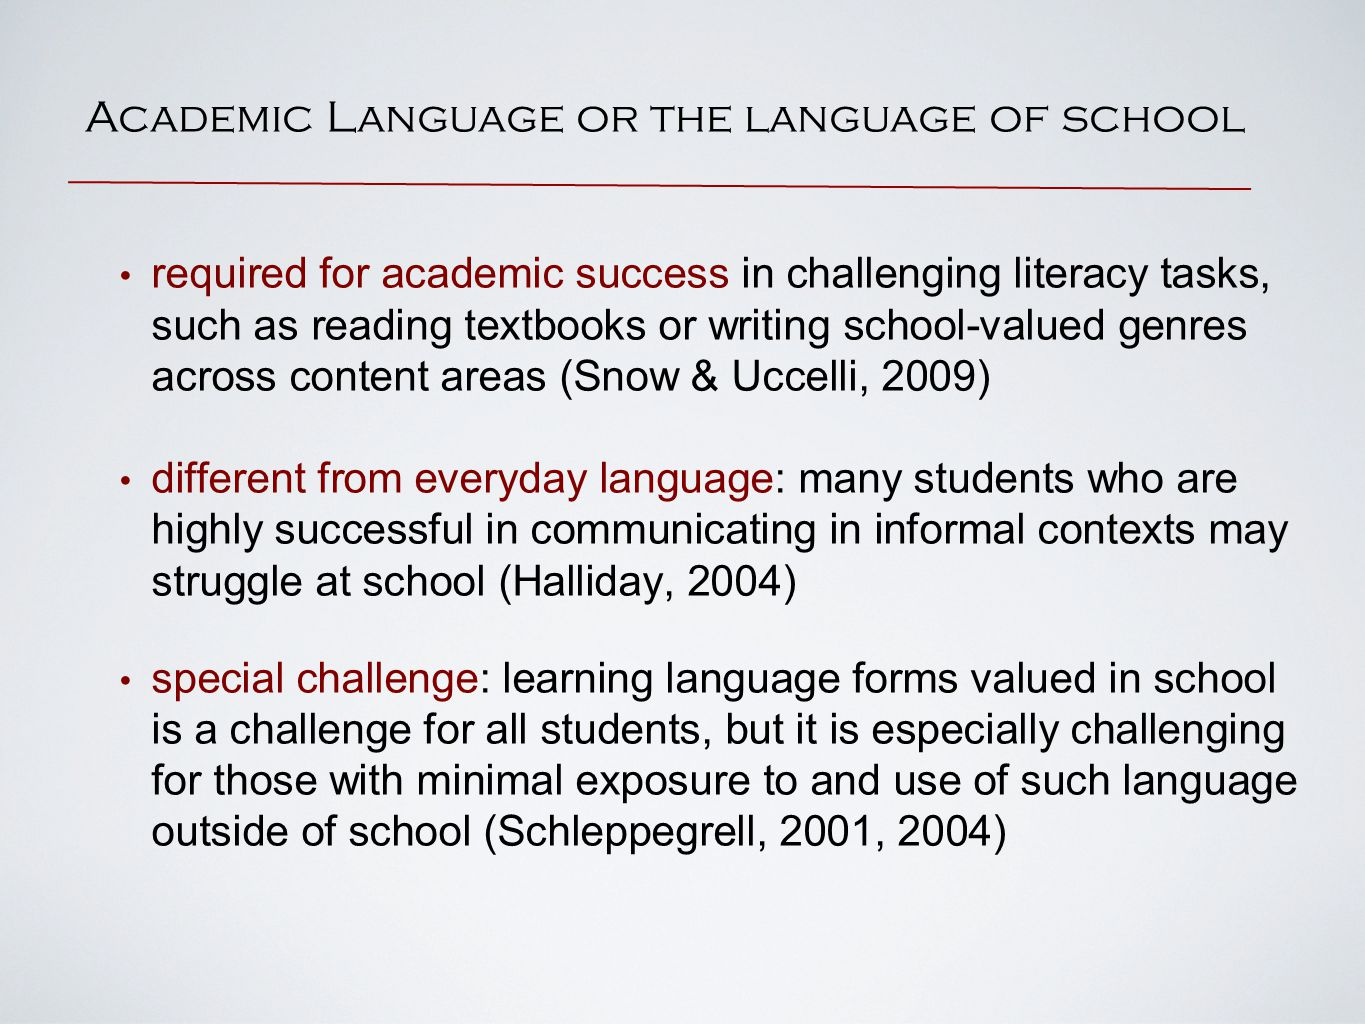 Academic Language or the language of school required for academic success in challenging literacy tasks, such as reading textbooks or writing school-valued genres across content areas (Snow & Uccelli, 2009) different from everyday language: many students who are highly successful in communicating in informal contexts may struggle at school (Halliday, 2004) special challenge: learning language forms valued in school is a challenge for all students, but it is especially challenging for those with minimal exposure to and use of such language outside of school (Schleppegrell, 2001, 2004)